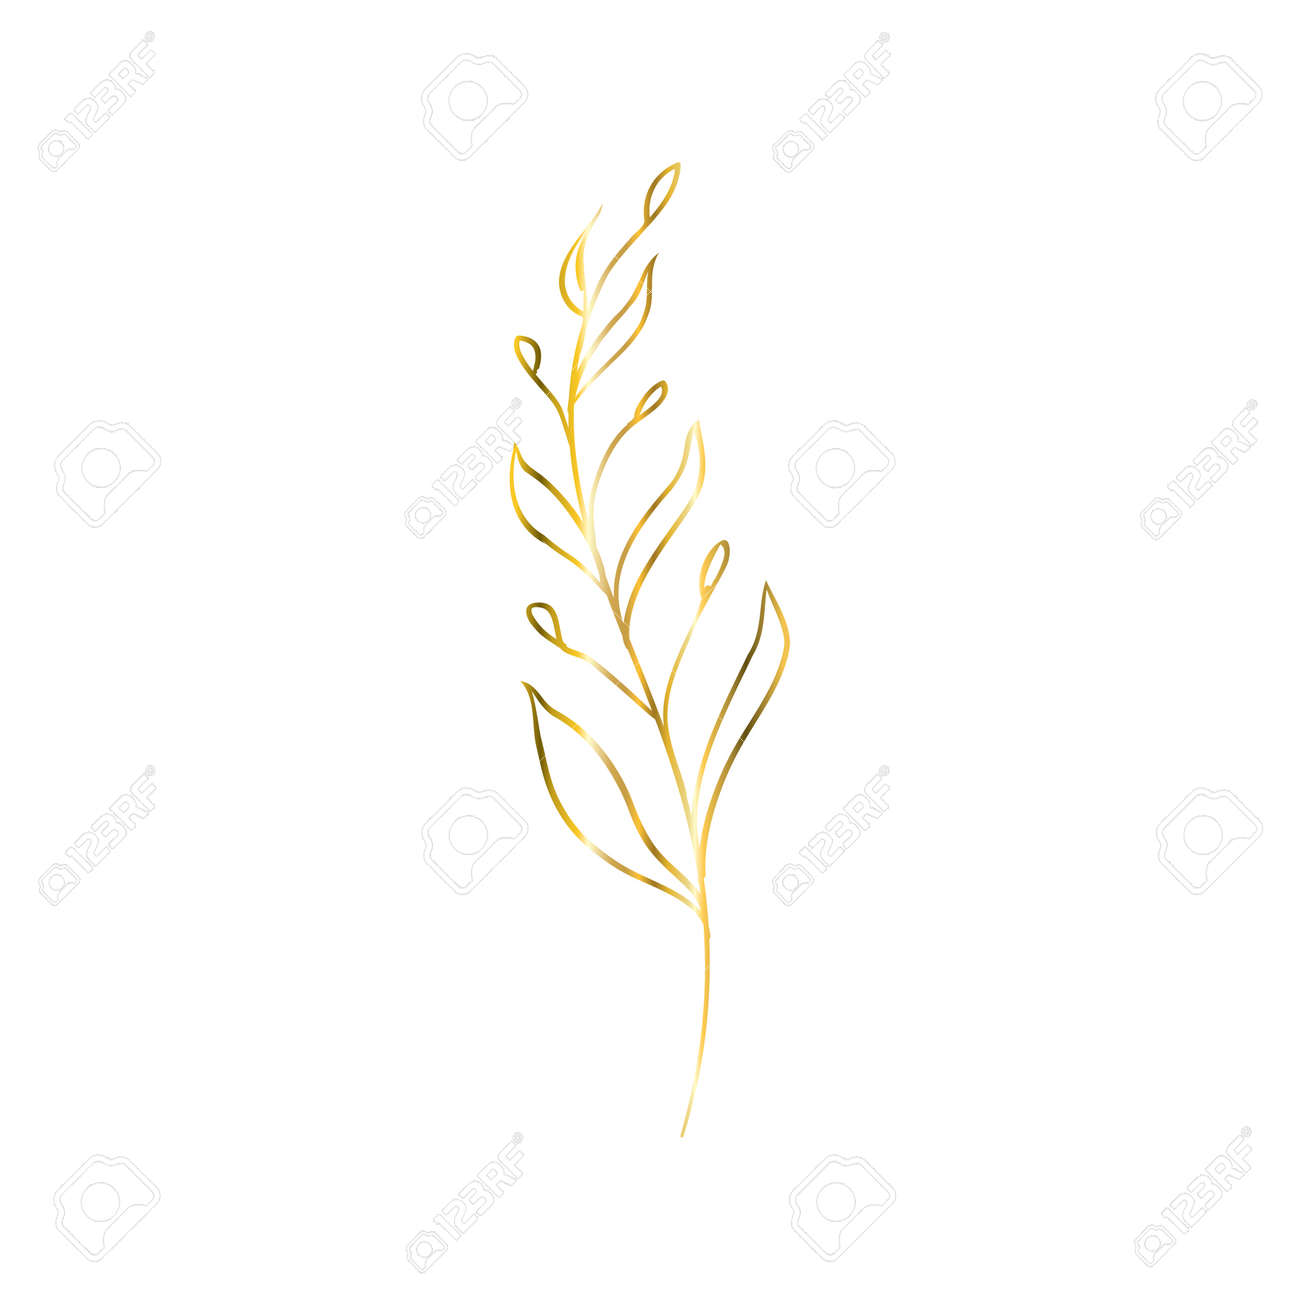 The golden sprig. Vector image with a golden twig. Editable geometric element isolated on white. - 168291132